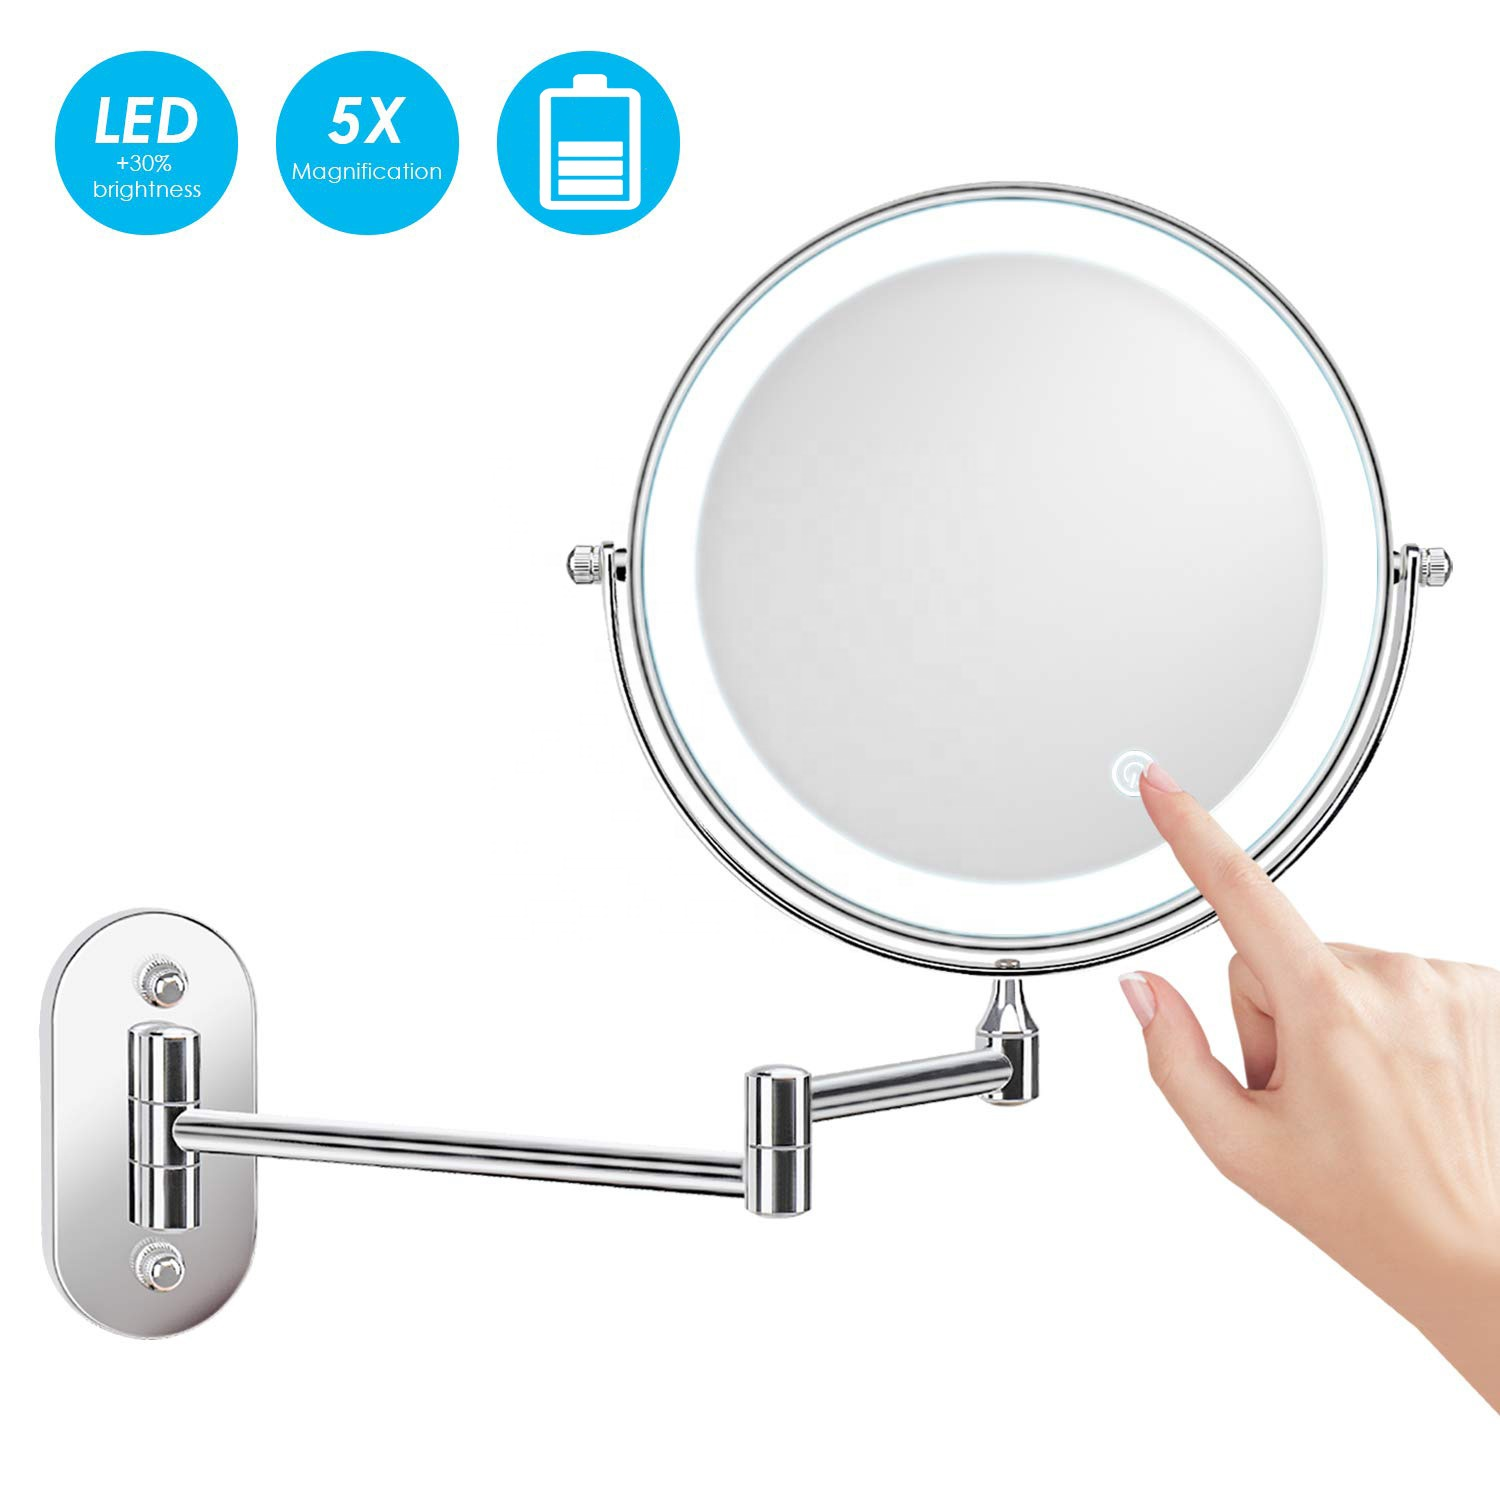 Espejos Para Maquillaje Flexible Bathroom Smart Mirror <strong>X10</strong>